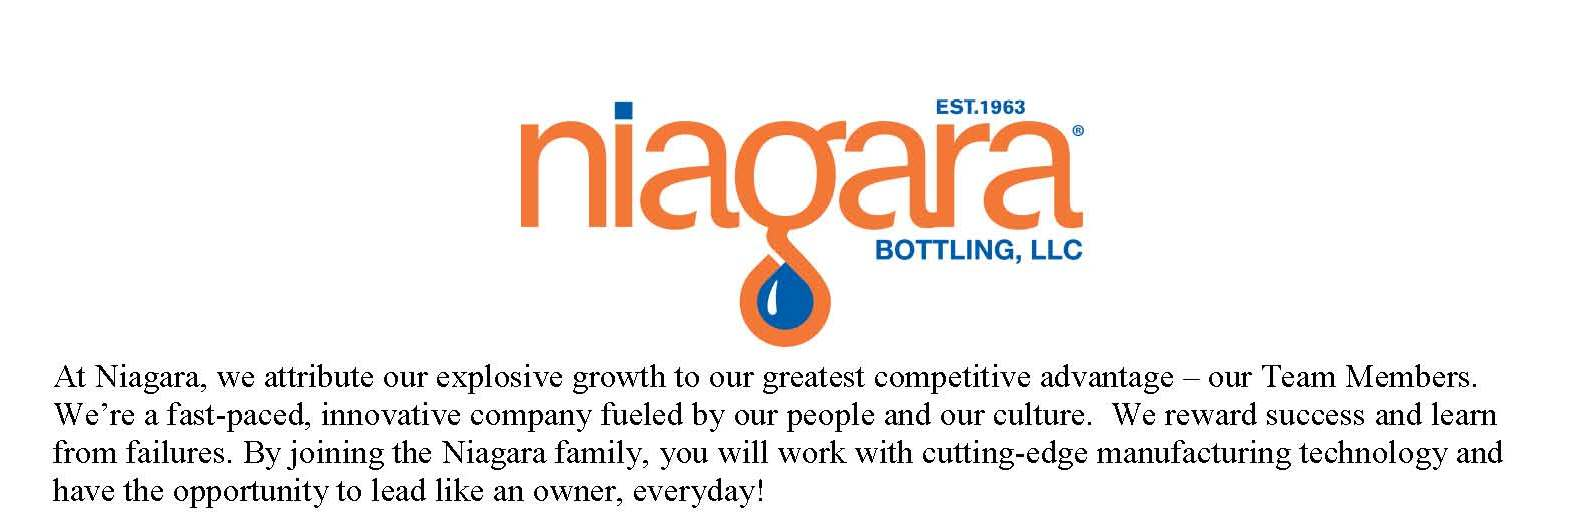 Niagara Bottling, LLC Hiring